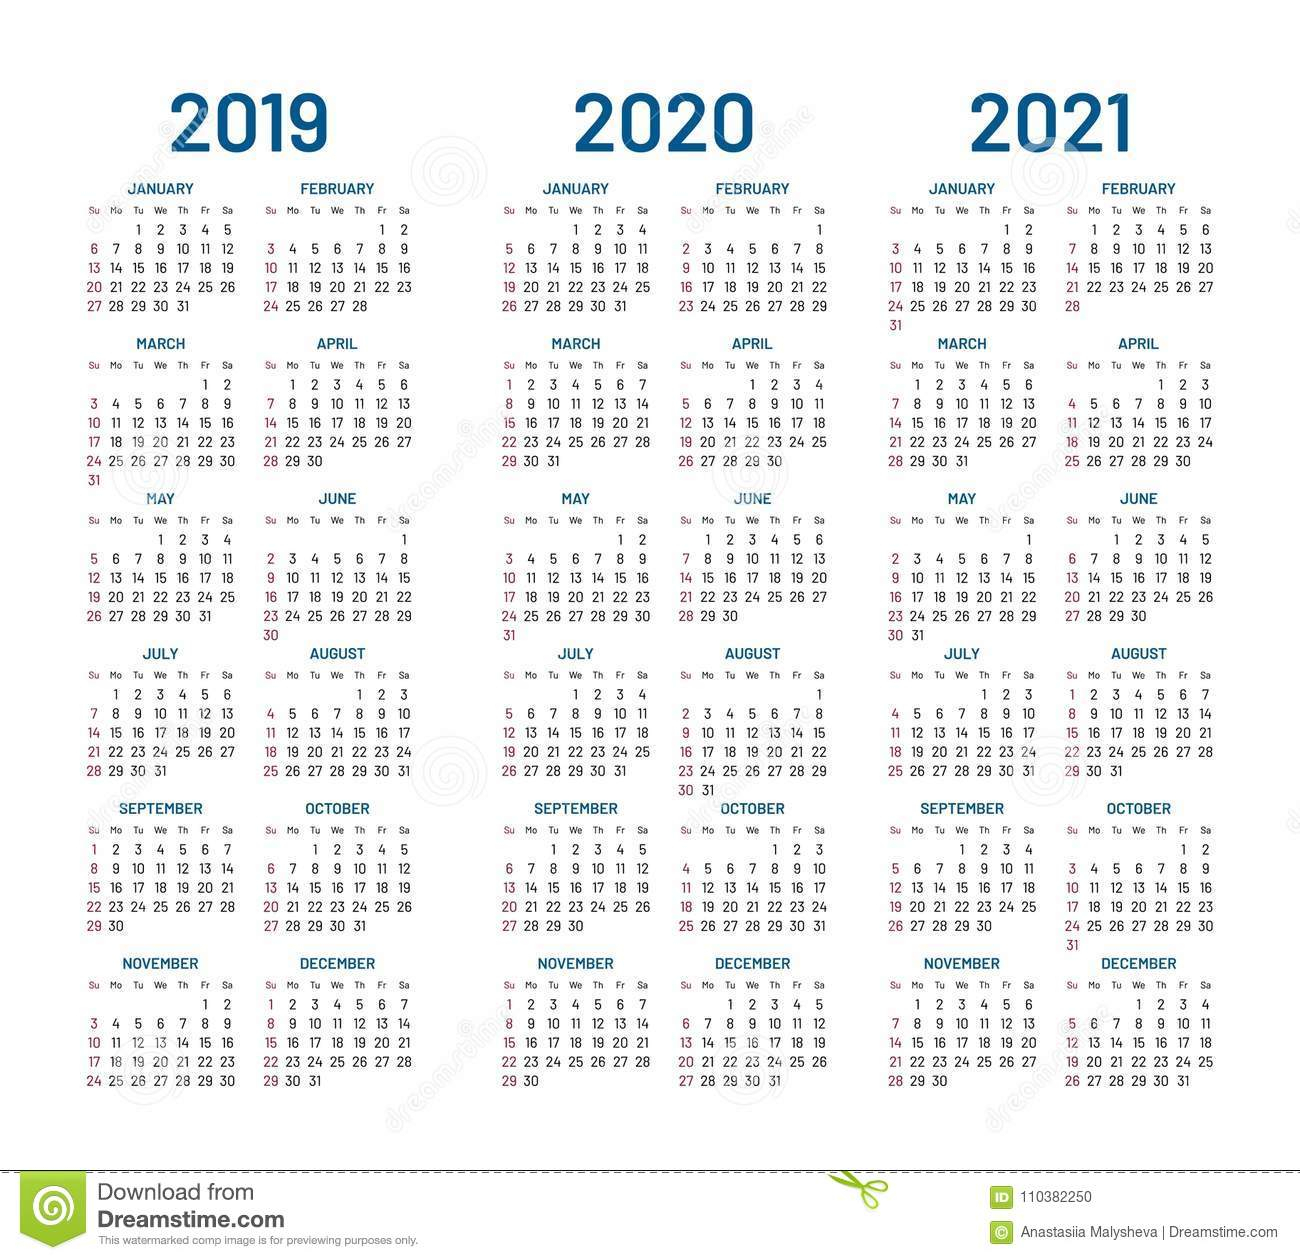 454 Retail Calendar 2019 Vs 2020 – Samyysandra In 2020 National Retail Federation 4 5 4 Printable Calendar